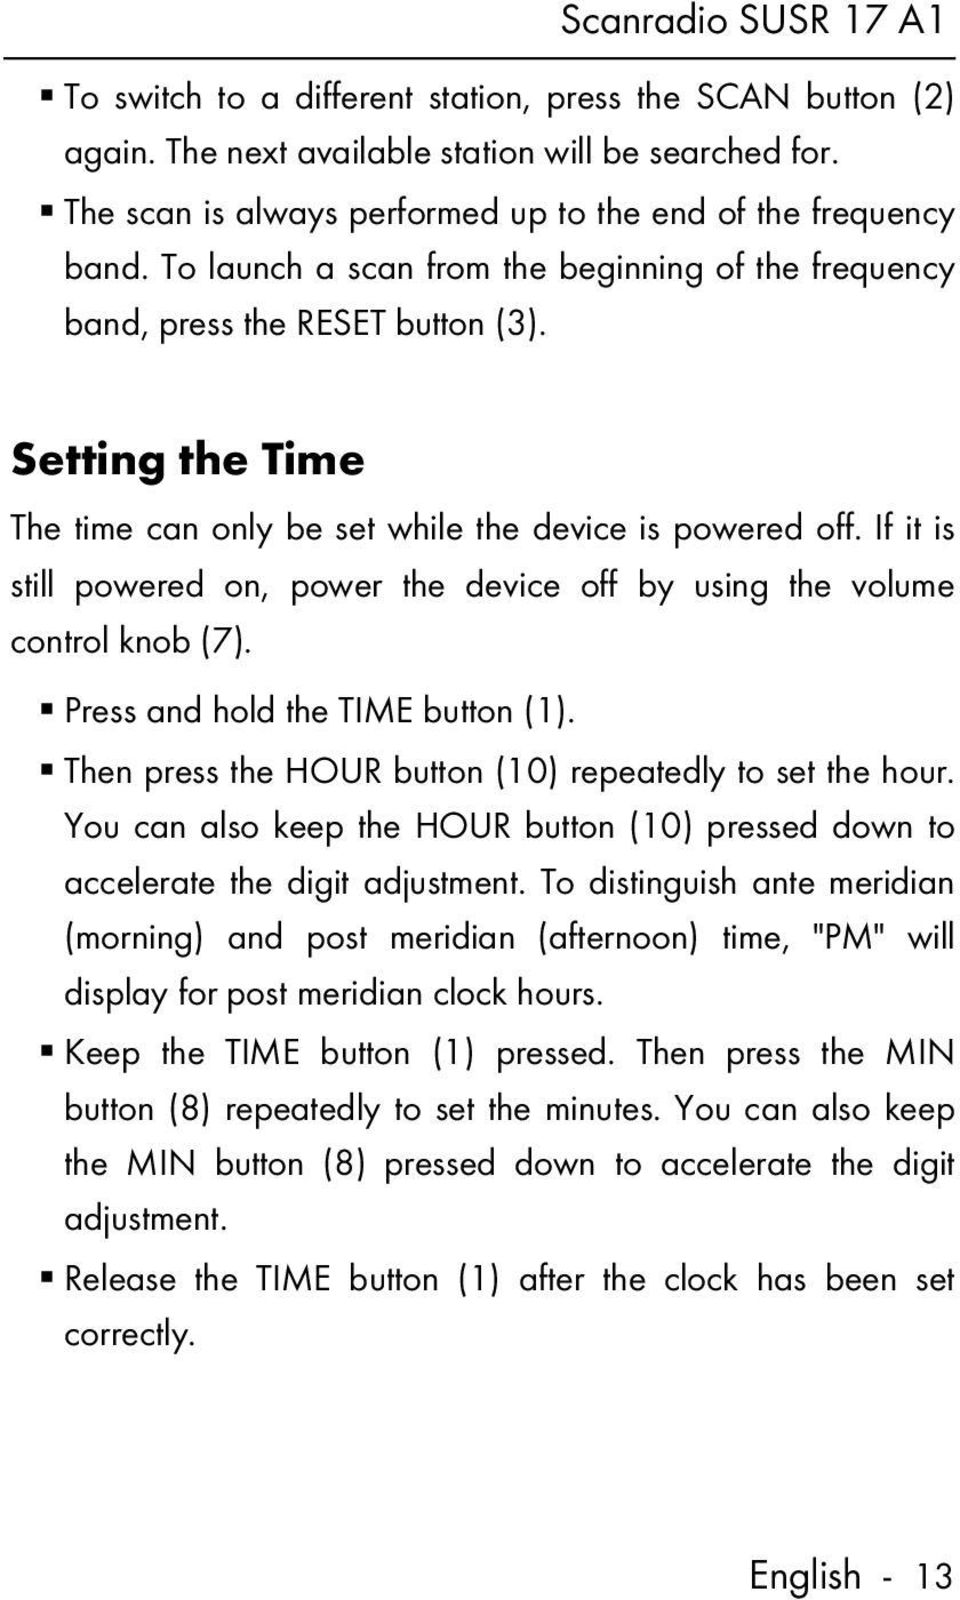 Setting the Time The time can only be set while the device is powered off. If it is still powered on, power the device off by using the volume control knob (7). Press and hold the TIME button (1).